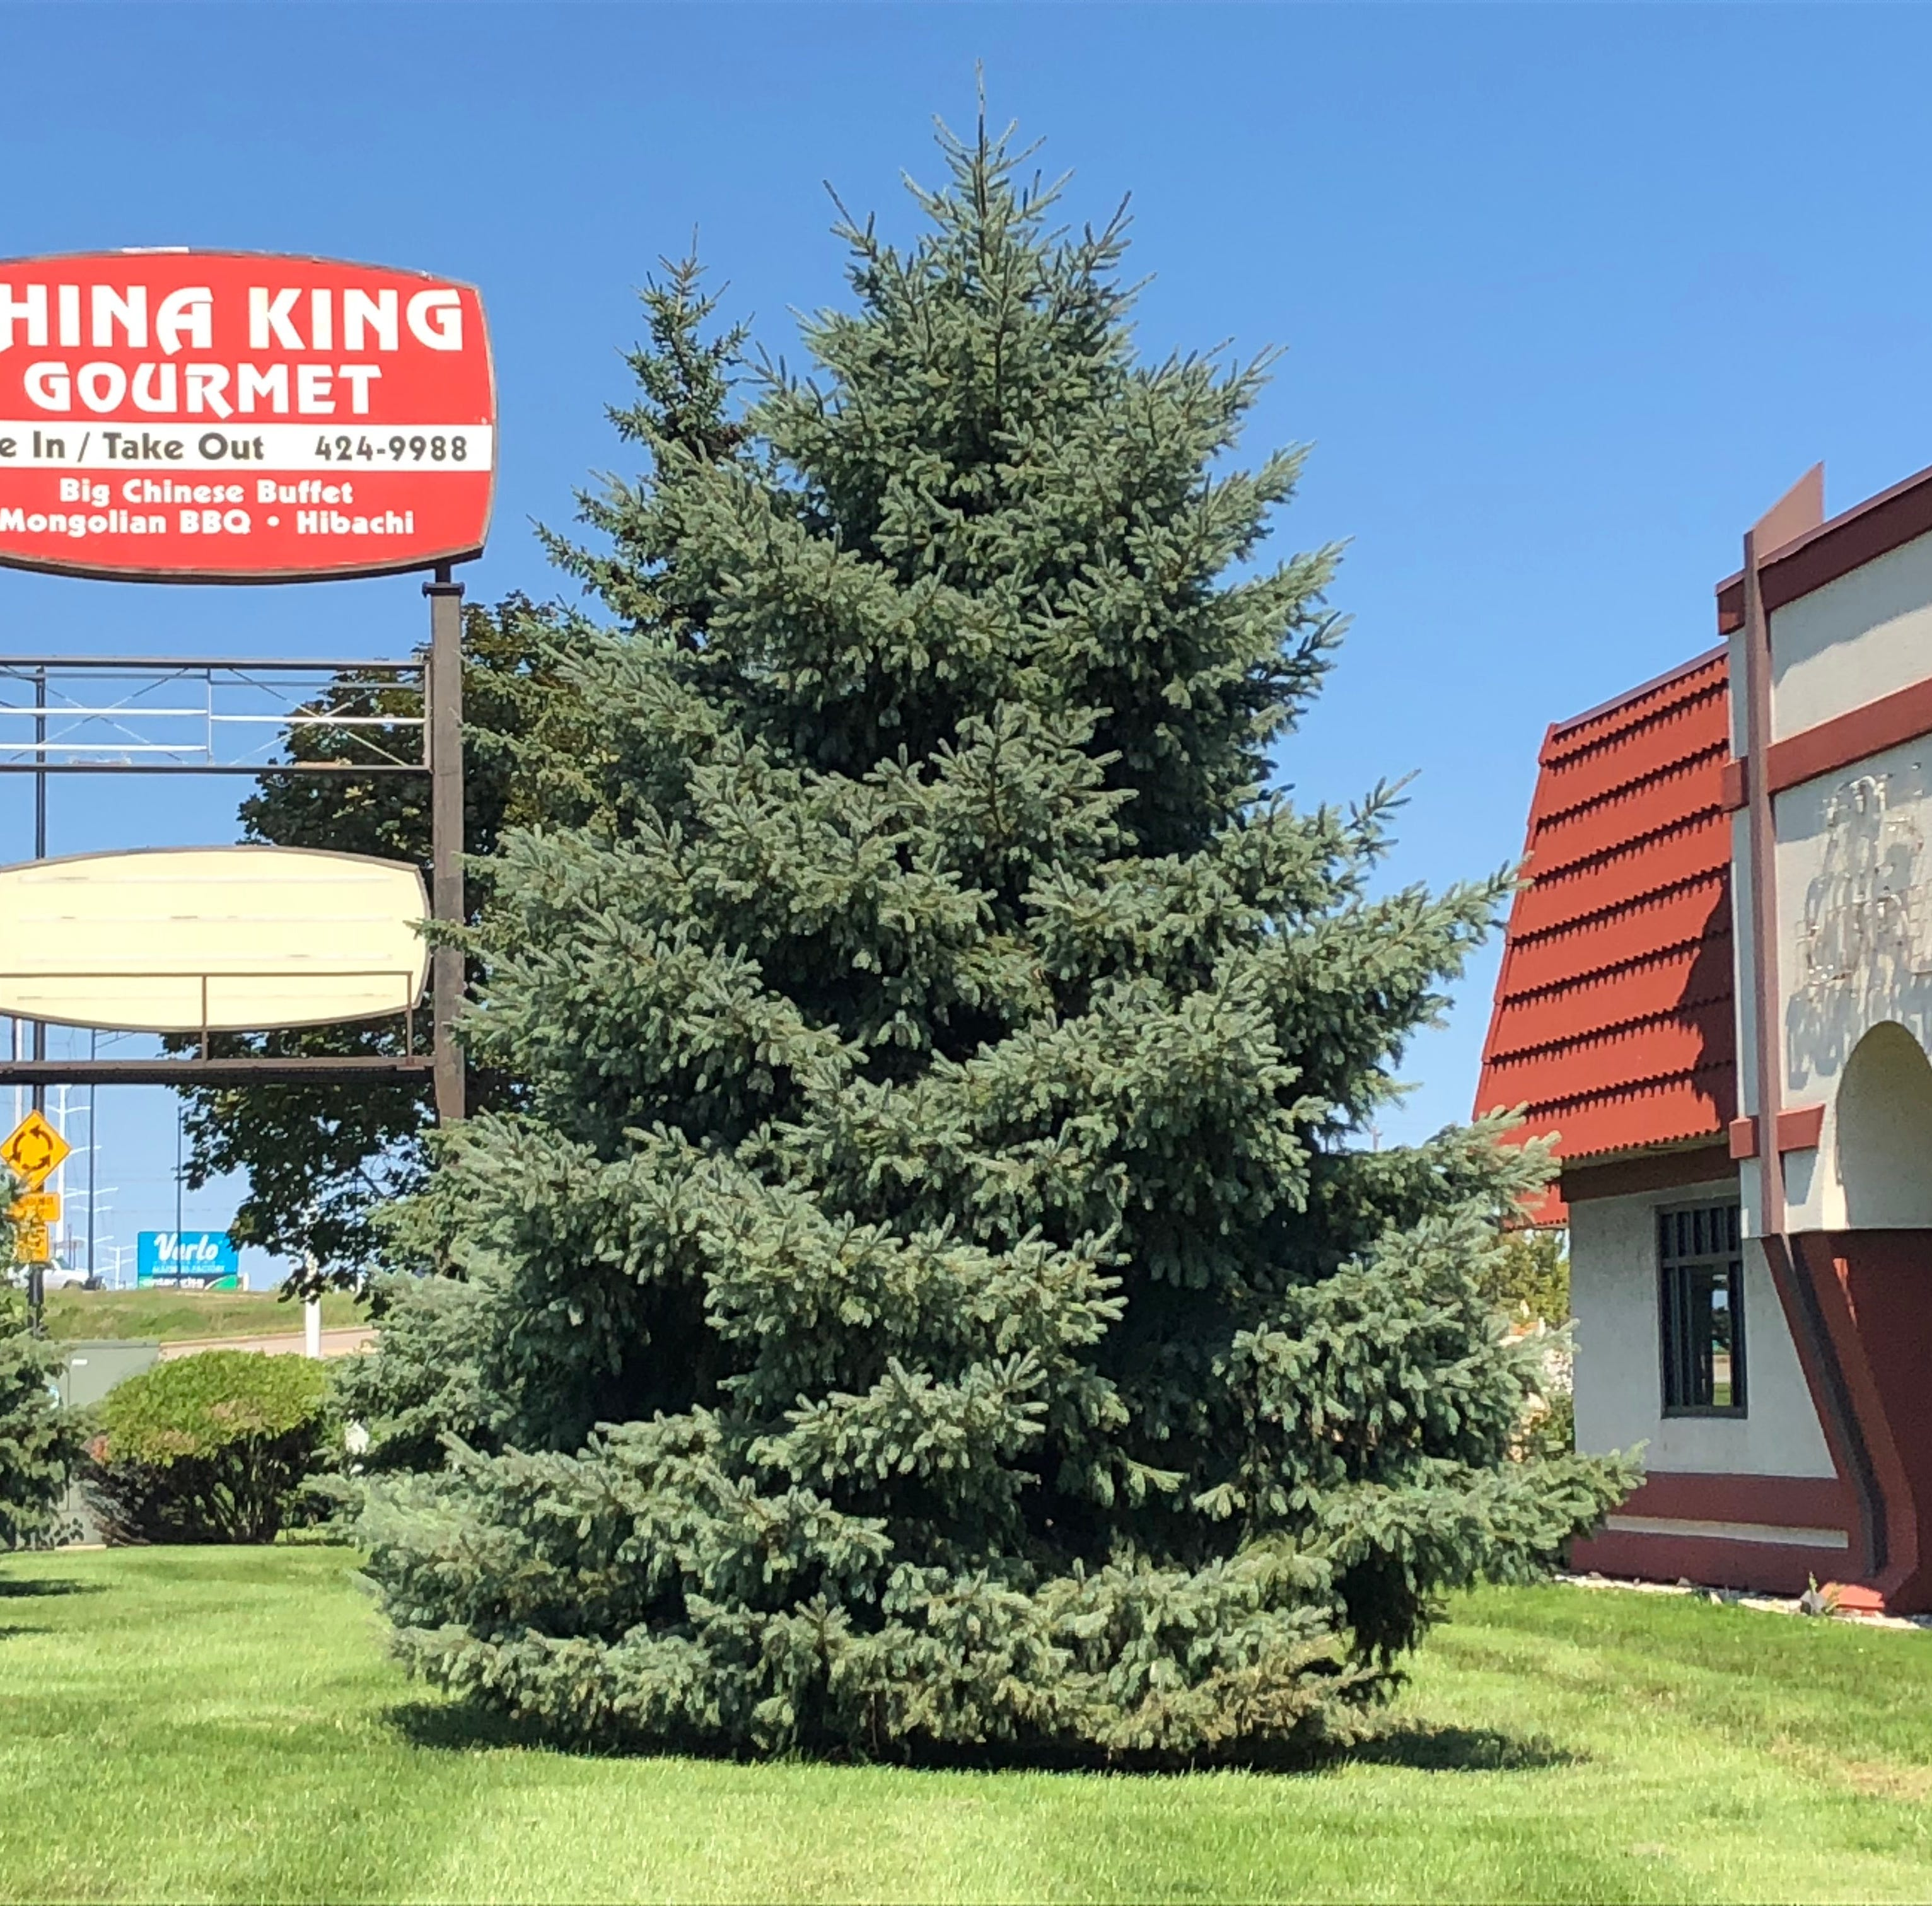 Streetwise: Halloween Express opens for season; China King closes for remodel